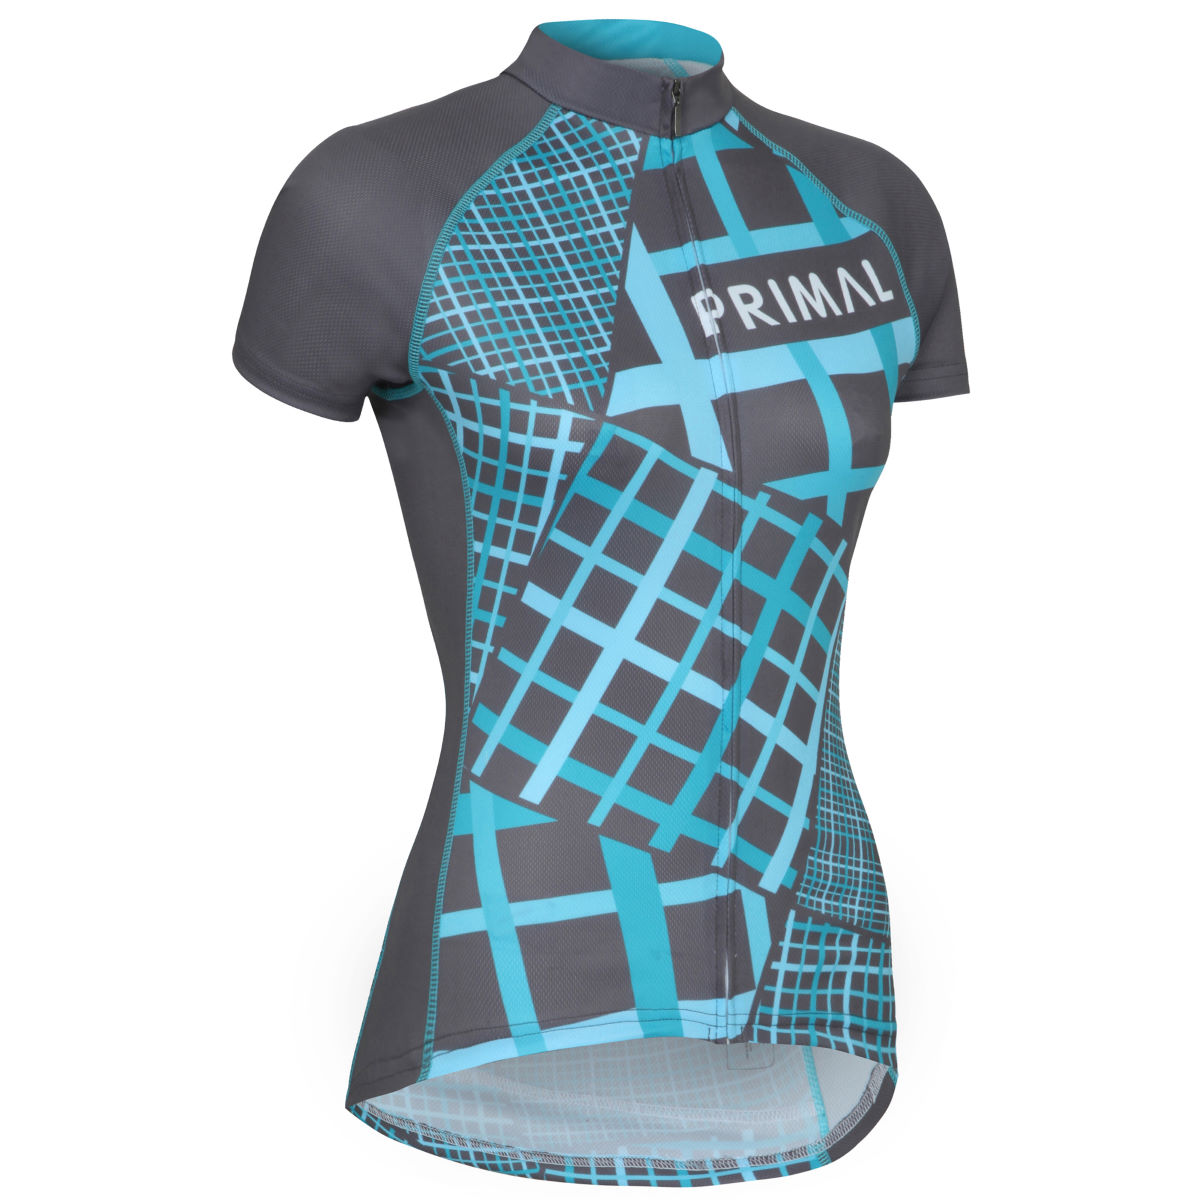 Maillot Femme Primal Lattice (coupe sportive) - 2XL Gris/Bleu